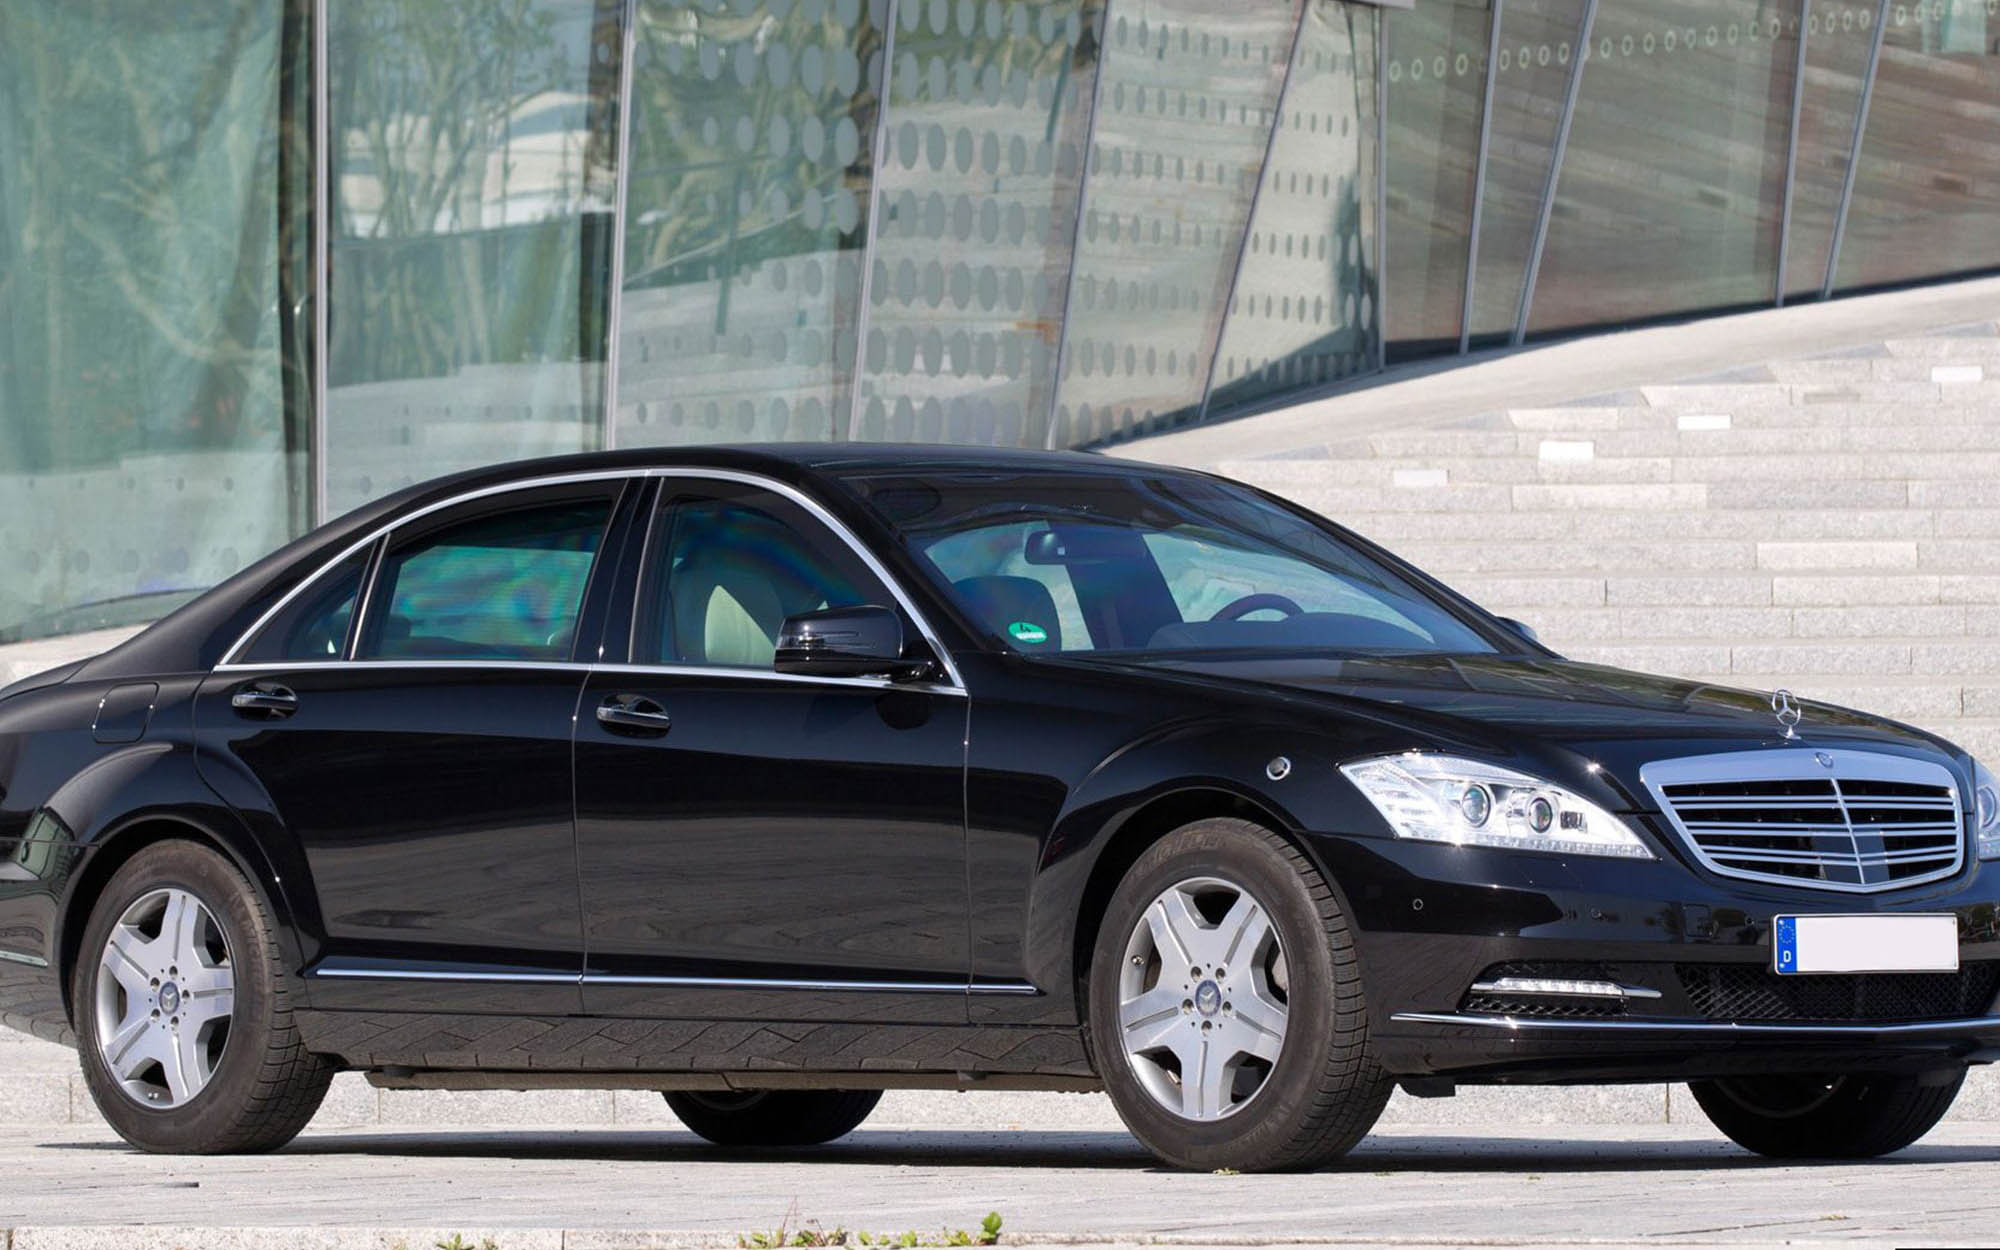 Mercedes-Benz S600 W221 GUARD Бронированный B6/B7